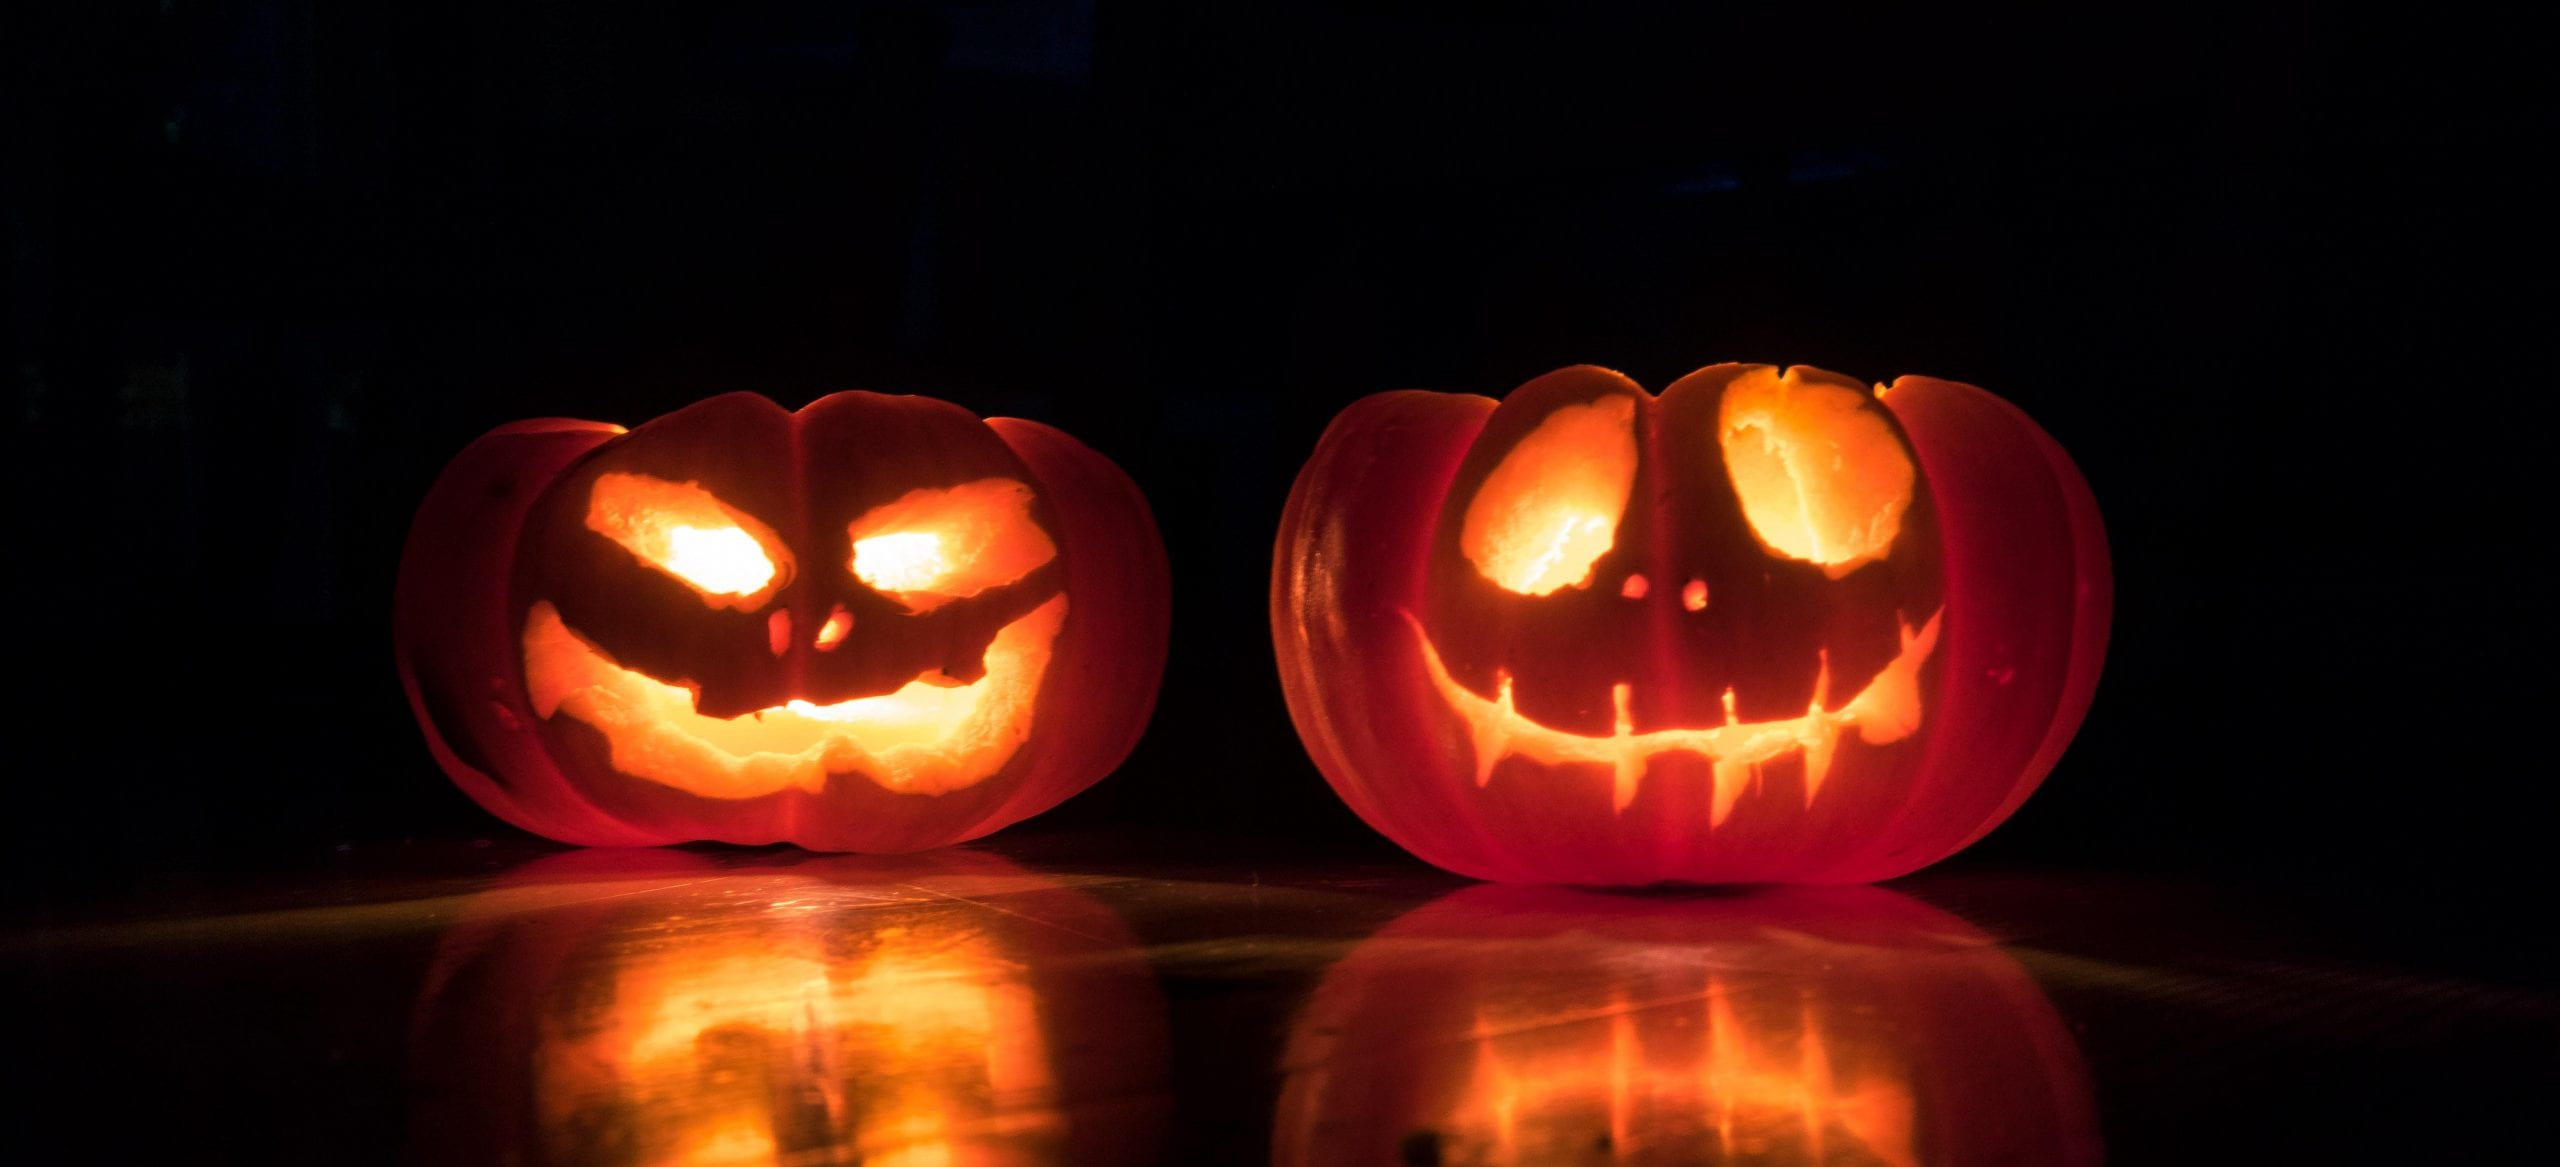 Two carved pumpkins with candlelight inside